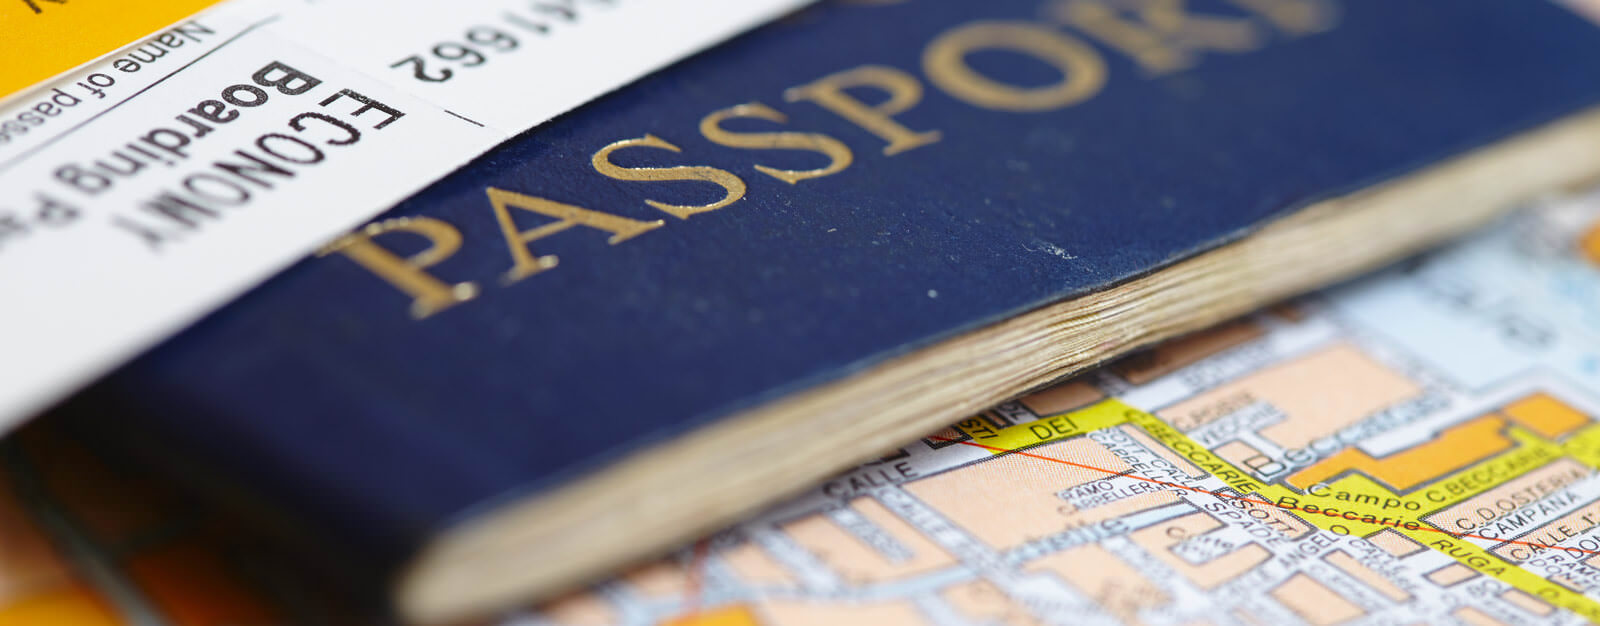 Get your passport fast with Passport Health's expedited services.